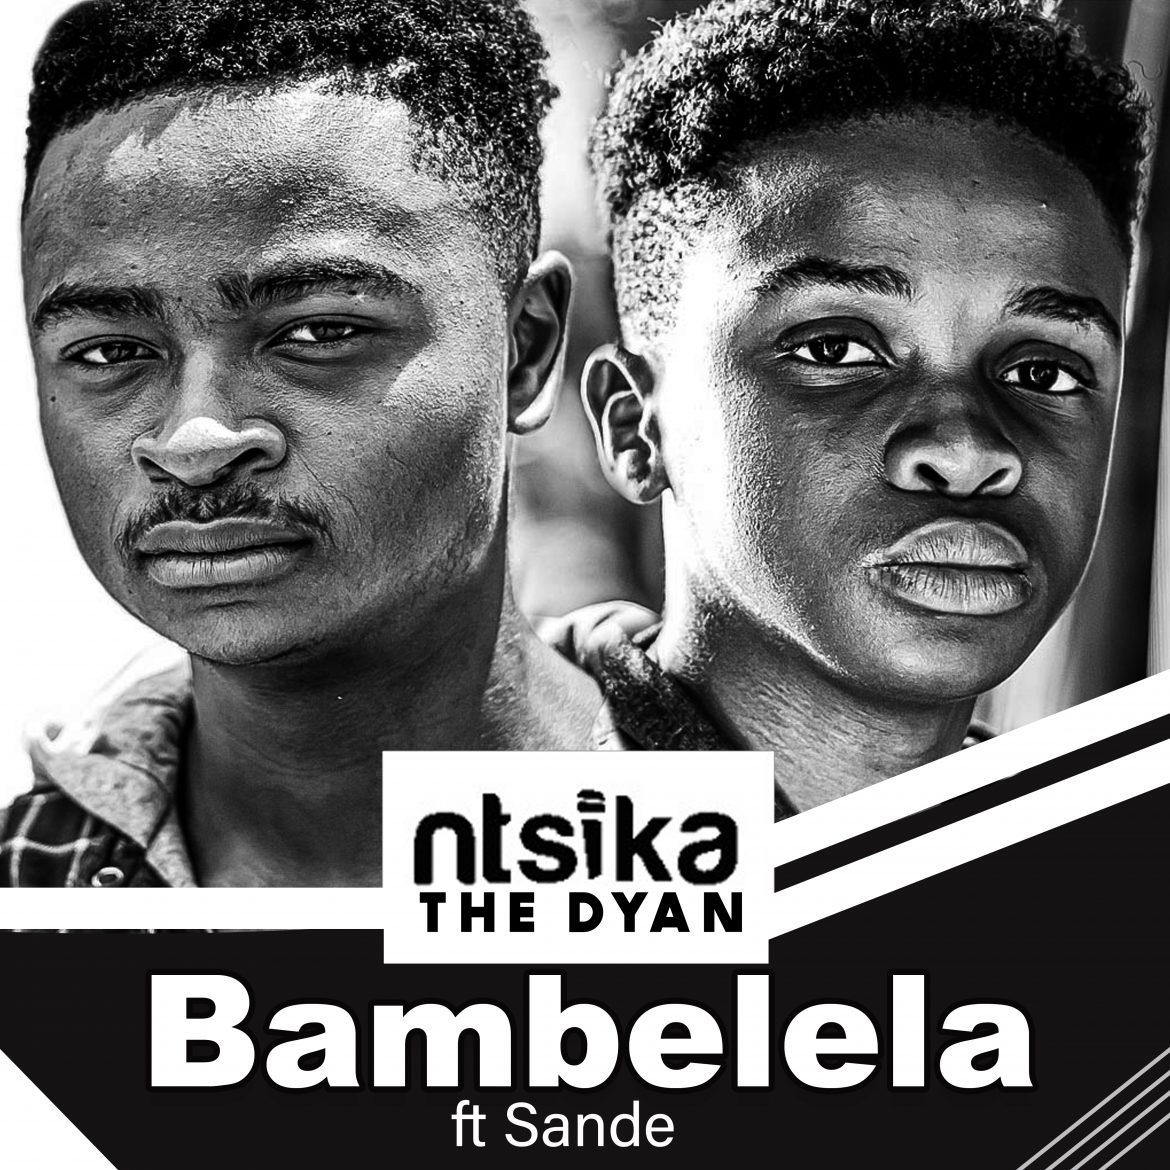 BAMBELELA is all about fighting against the odds and saying NO to giving up hope. Ntsika The Dyan is a force to be reckoned with. PLAYLISTED